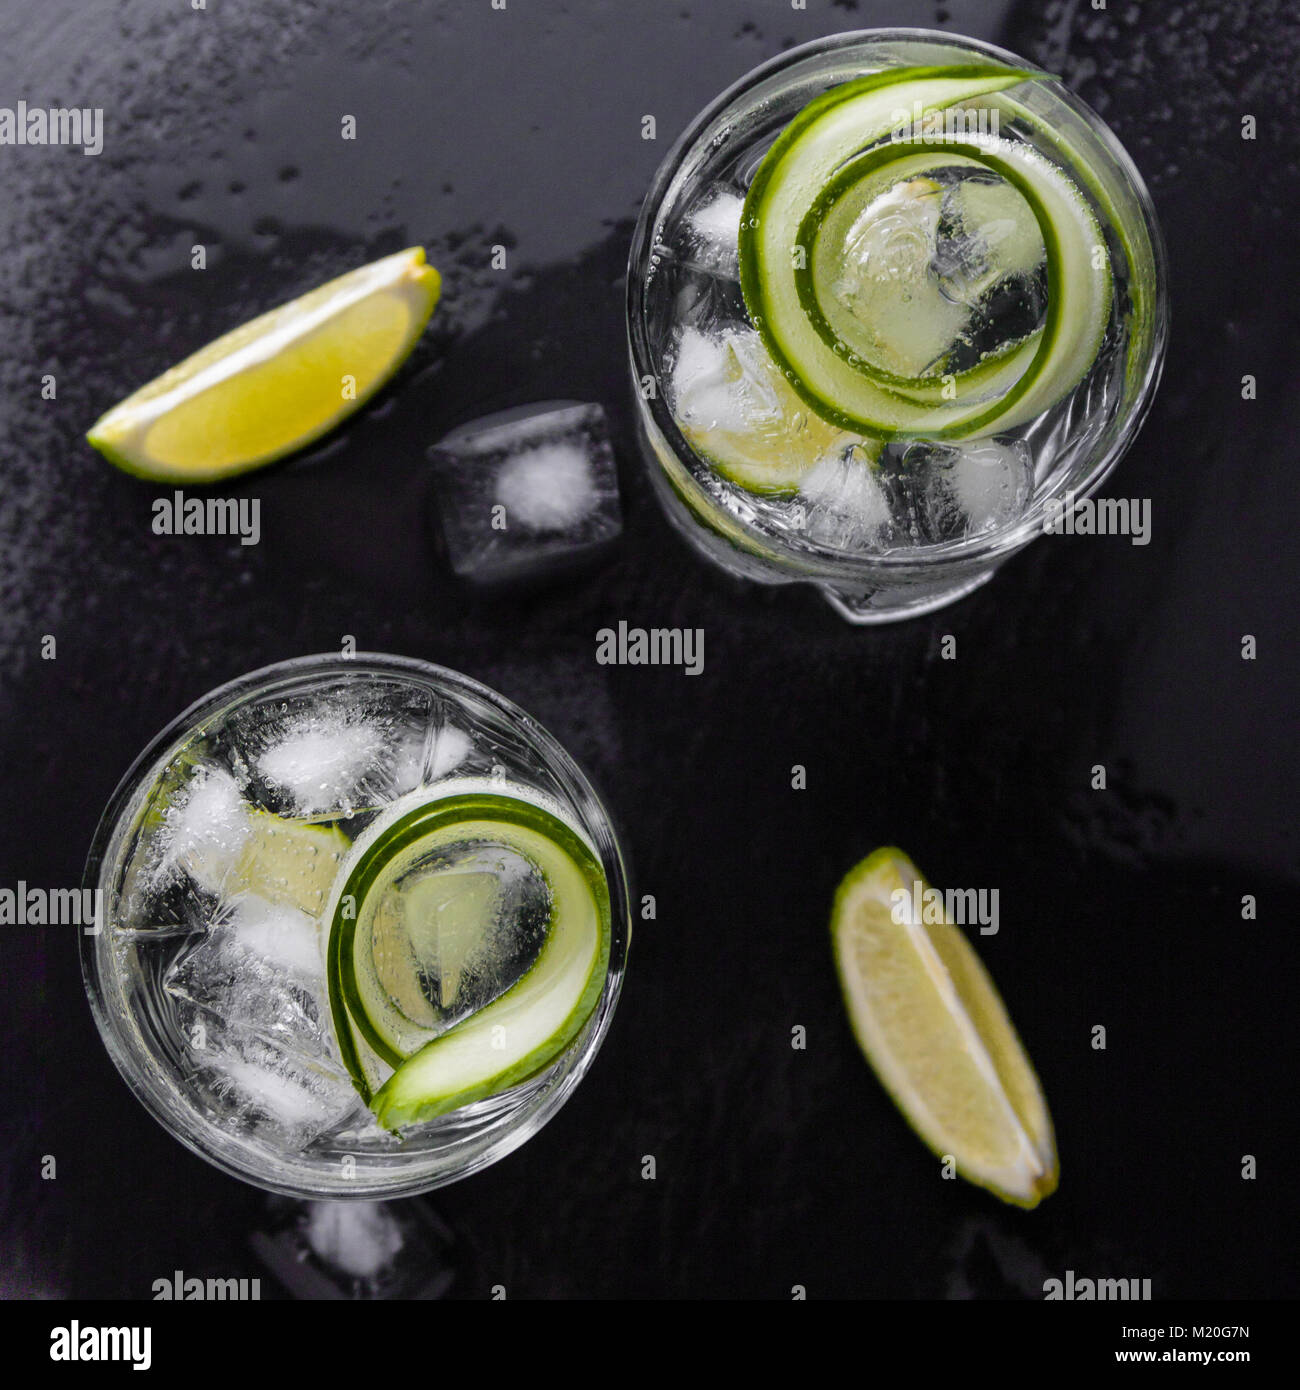 gin tonic with cucumber, lime and ice in glass - Stock Image